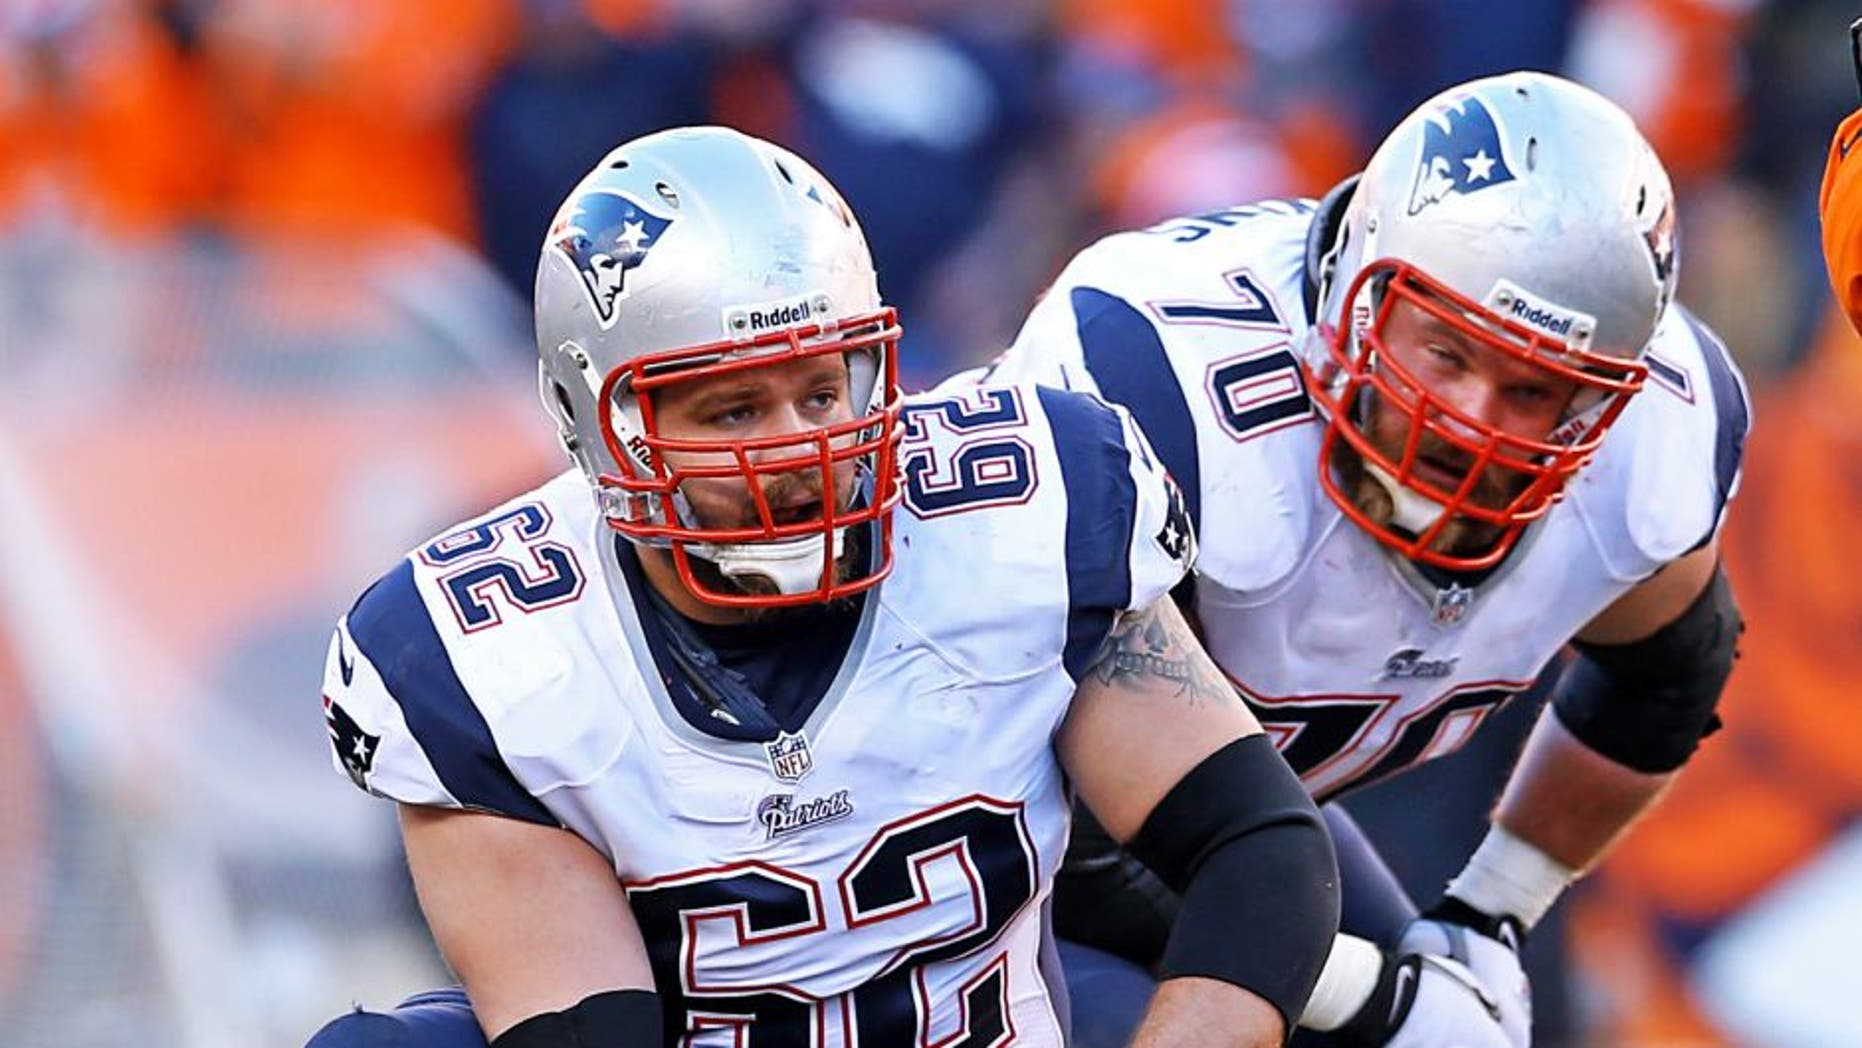 January 19, 2014; Denver, CO, USA; New England Patriots offensive lineman Ryan Wendell (62) and guard Logan Mankins (70) against the Denver Broncos in the 2013 AFC Championship football game at Sports Authority Field at Mile High. Mandatory Credit: Mark J. Rebilas-USA TODAY Sports